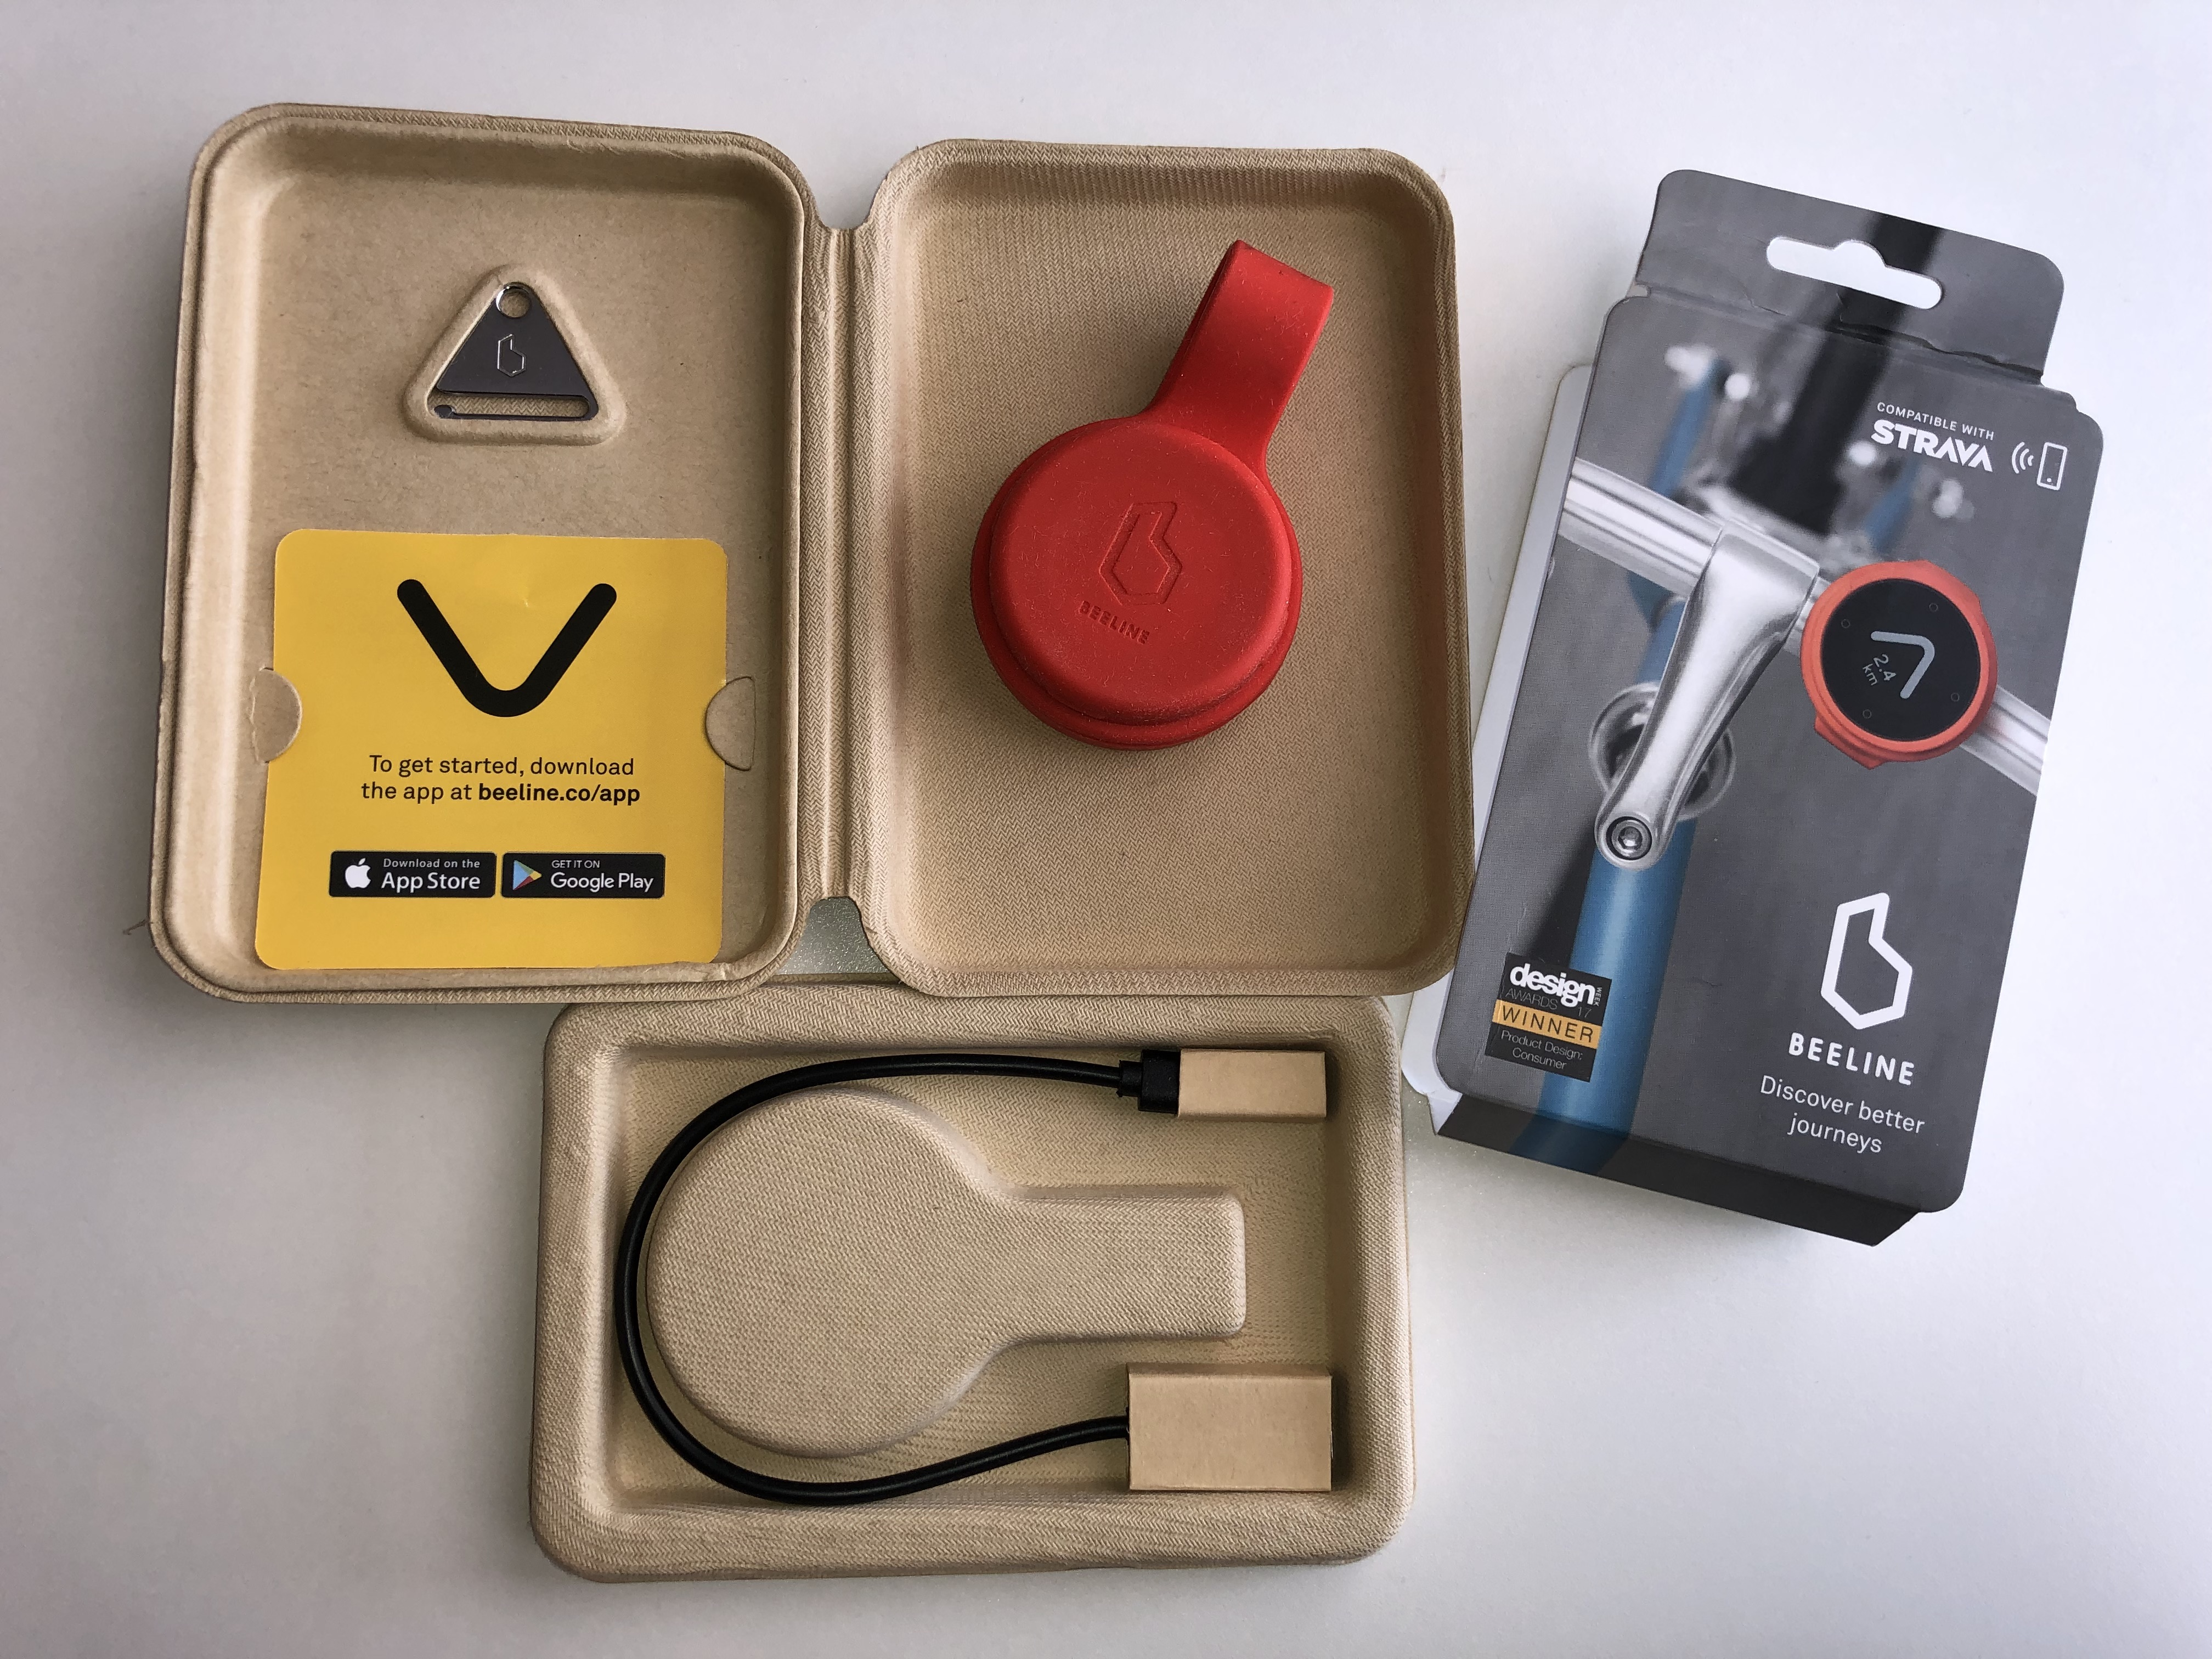 Opened Beeline Velo package in red. Shows device, keyring, instructions, box sleeve, charging cable.